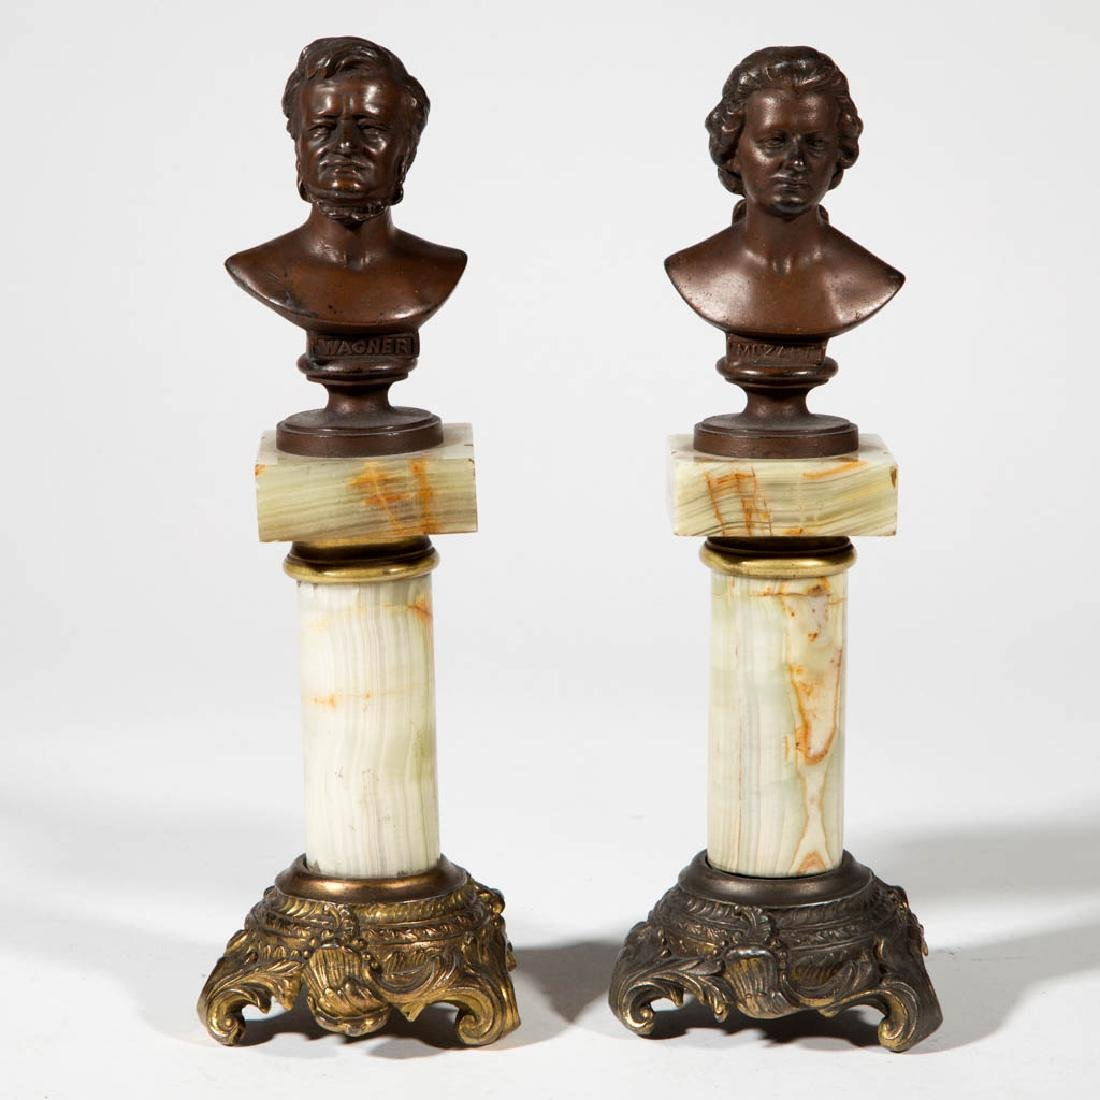 PAIR OF CONTINENTAL GRAND TOUR BUSTS ON ONYX PEDESTALS